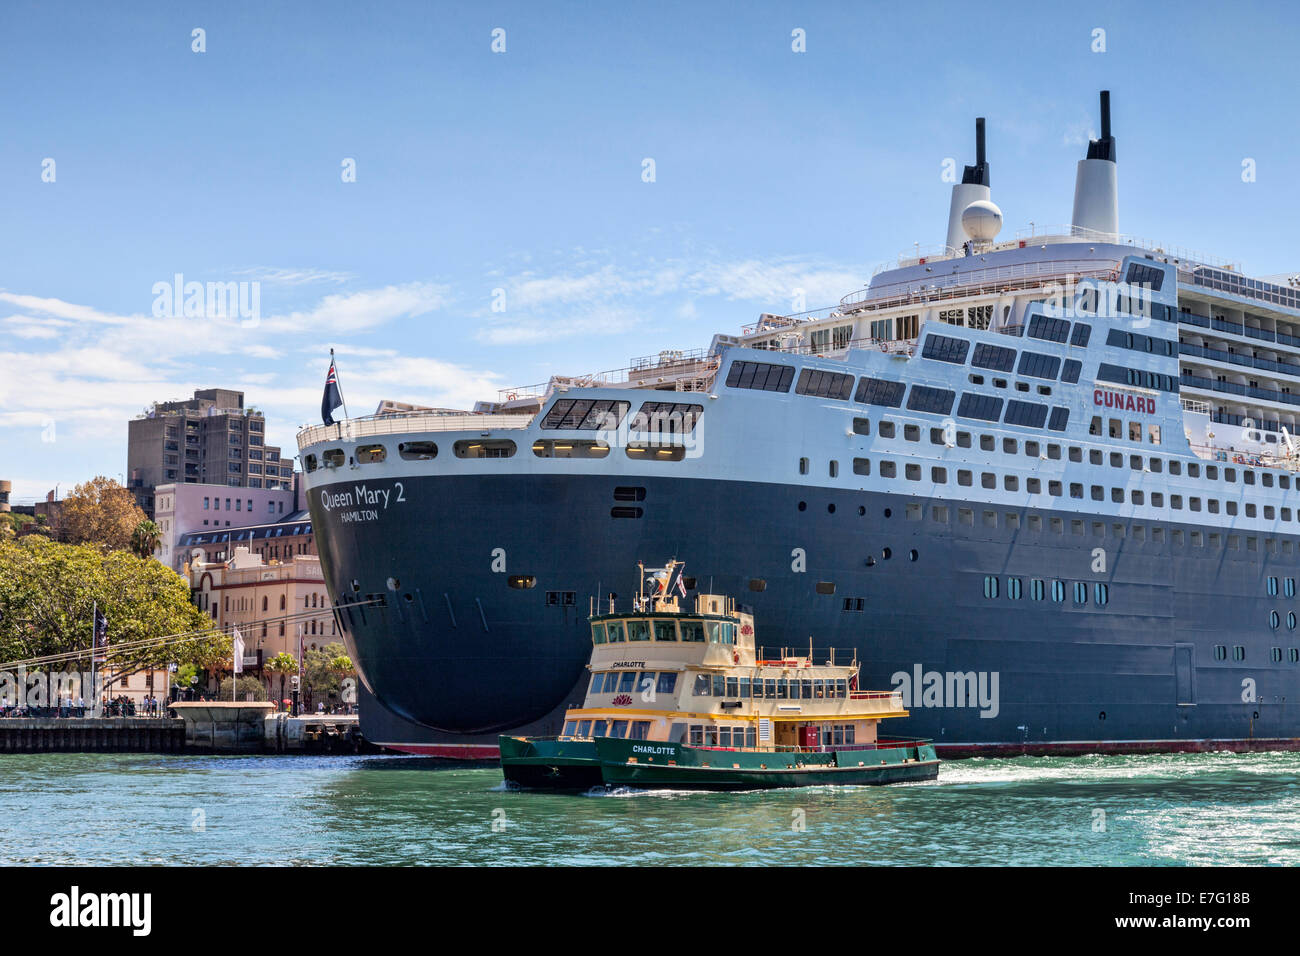 Cunard liner Queen Mary 2 berthed at Circular Quay, Sydney, and Sydney Ferry Charlotte. - Stock Image